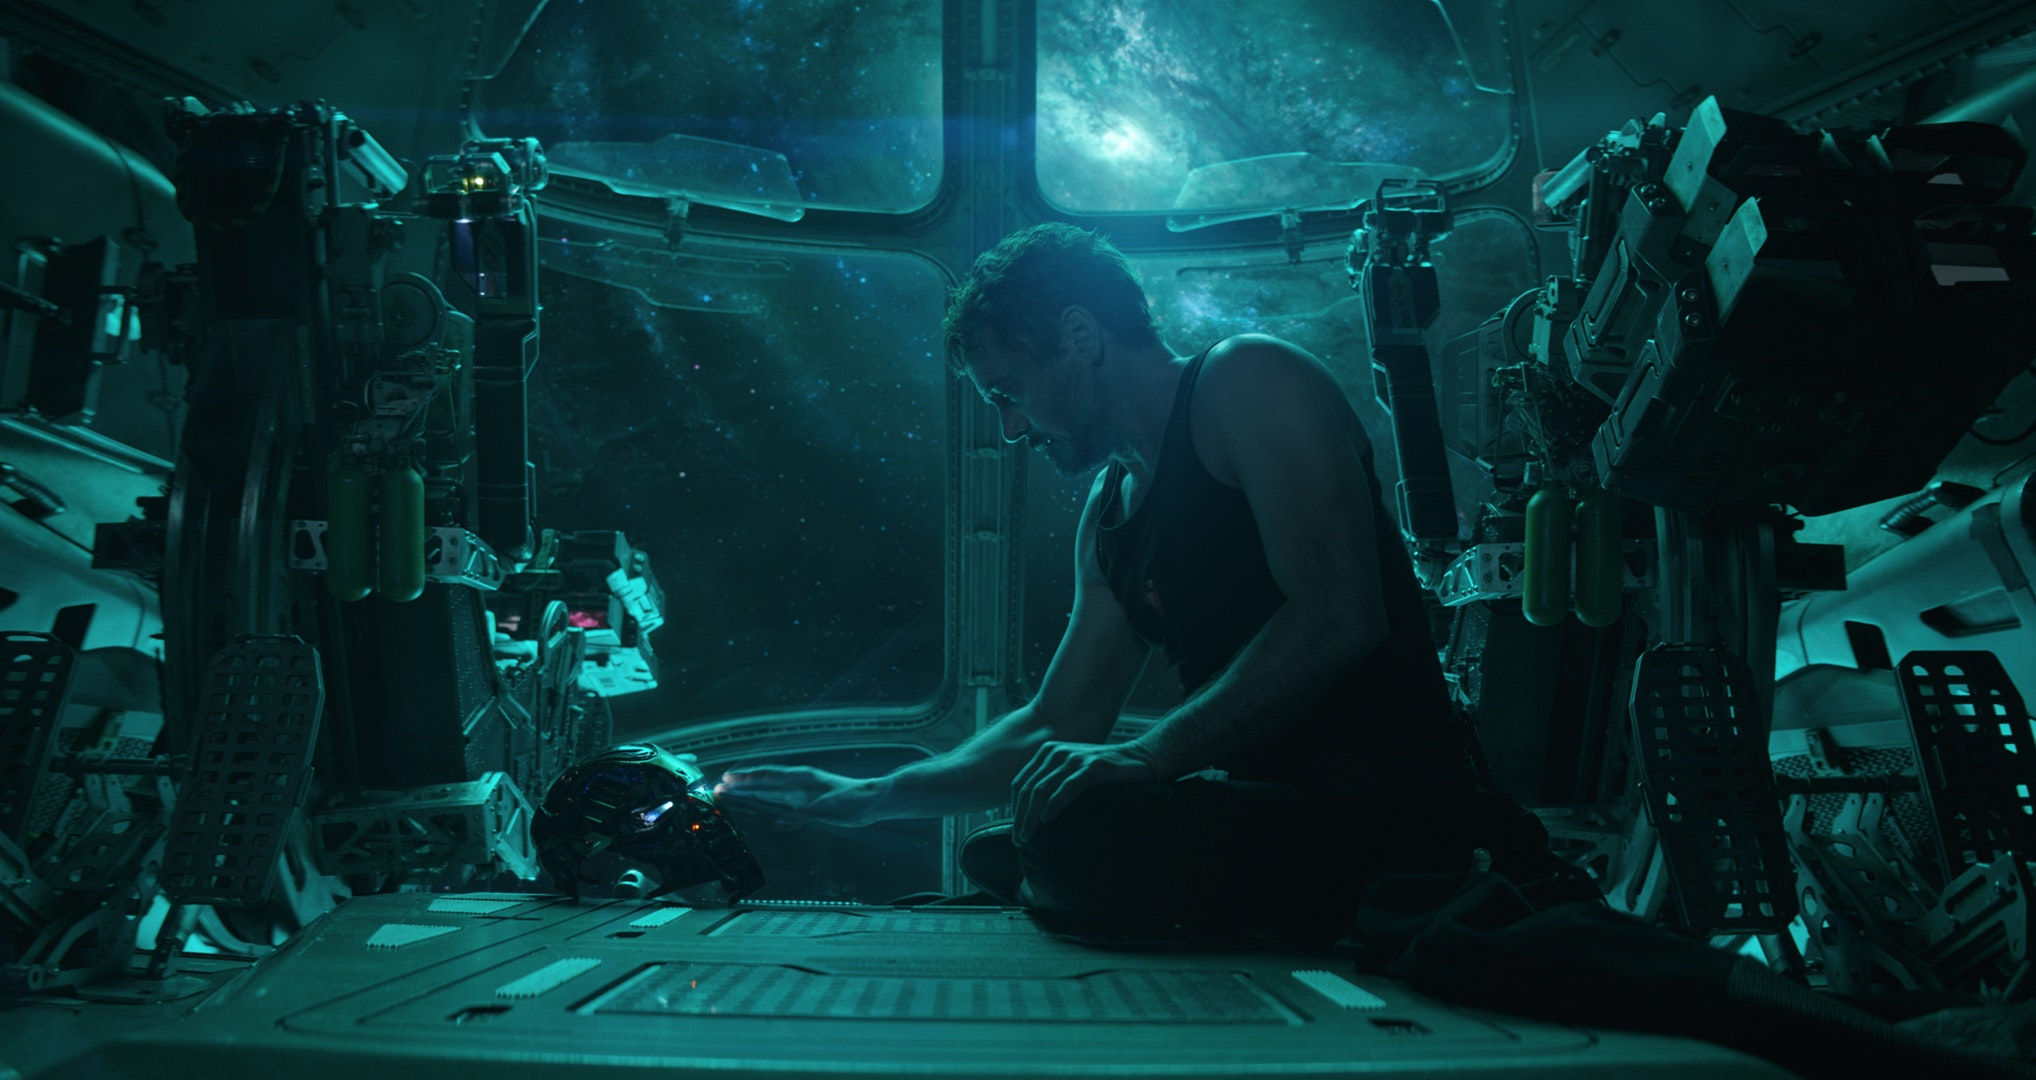 'Avengers: Endgame' Theory Suggests One Avenger Has Already Seen the Future